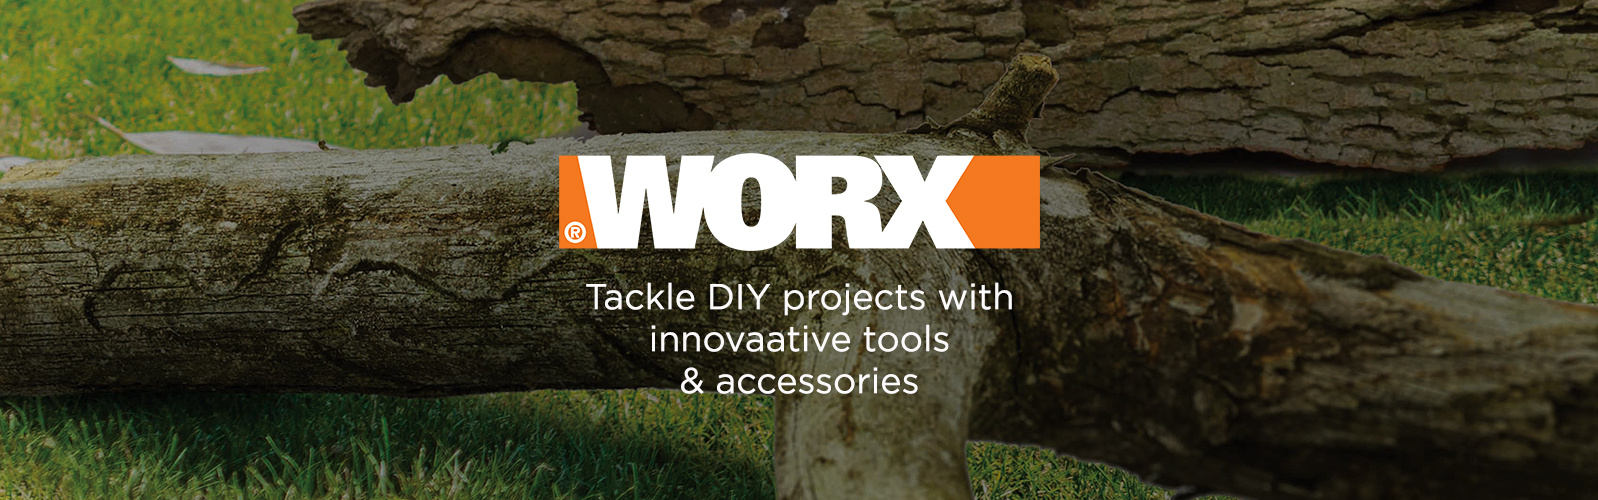 Worx — Tackle DIY projects with innovative tools & accessories